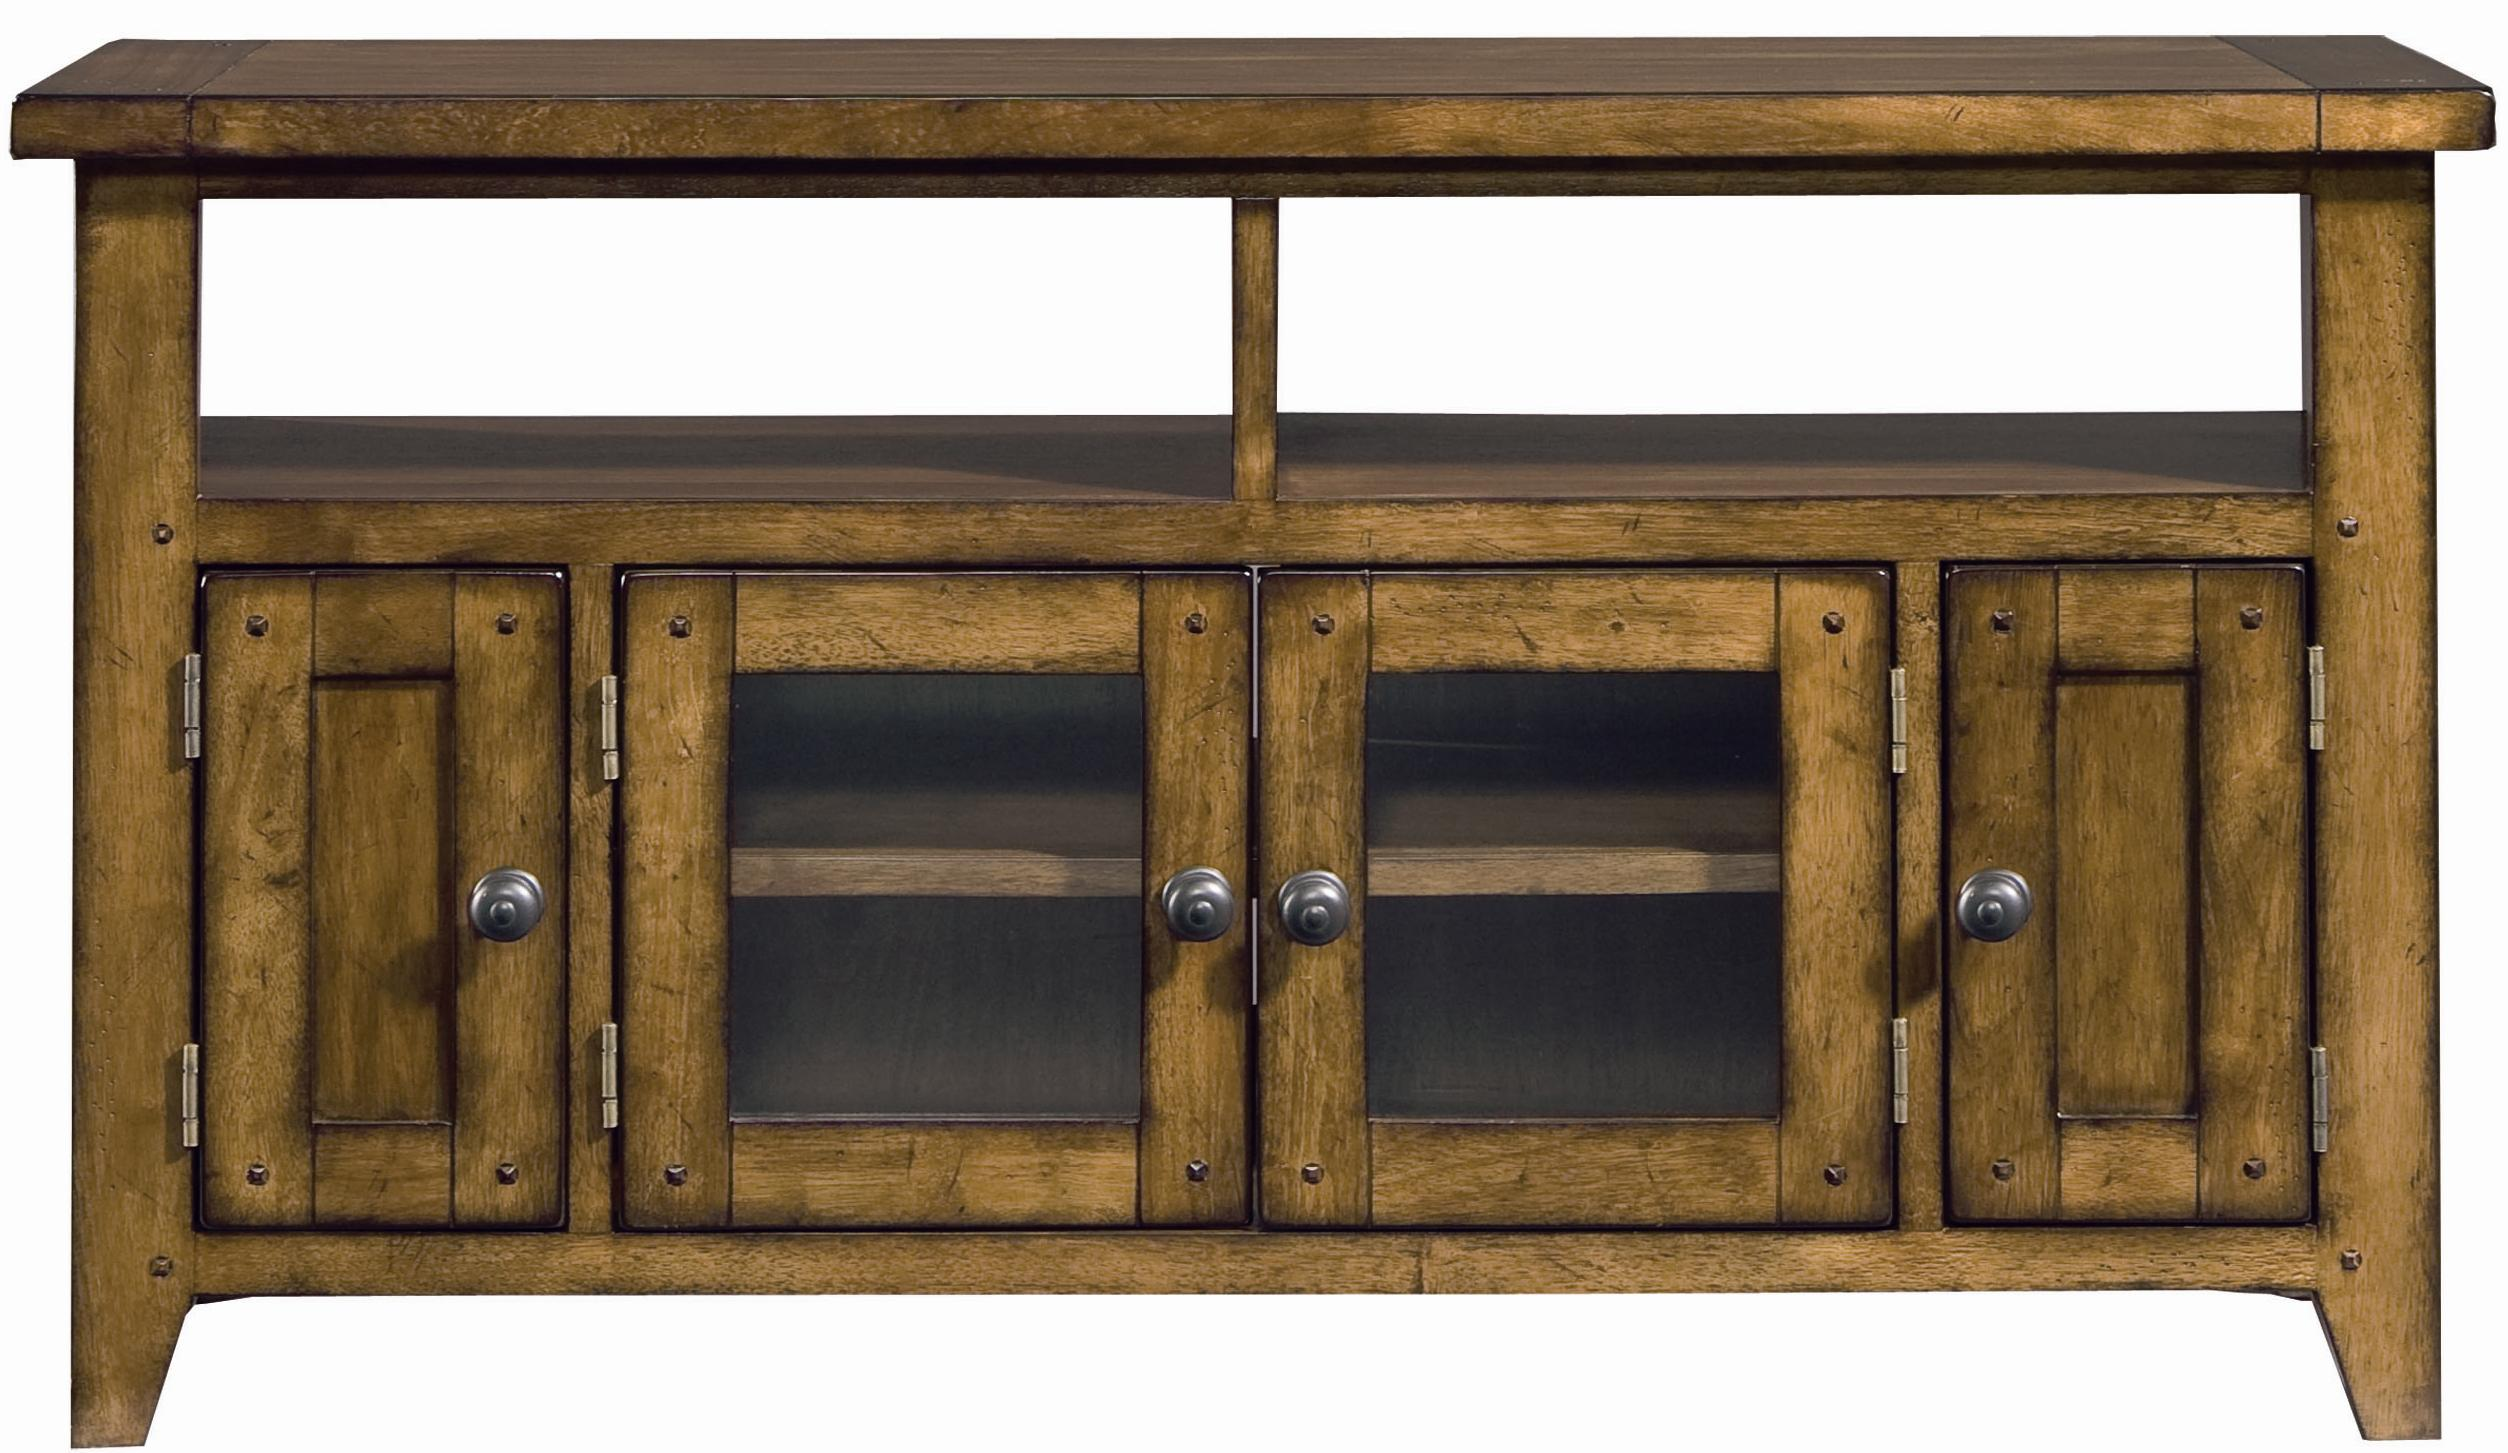 "Aspenhome Cross Country 55"" Console - Item Number: IMR-1625"